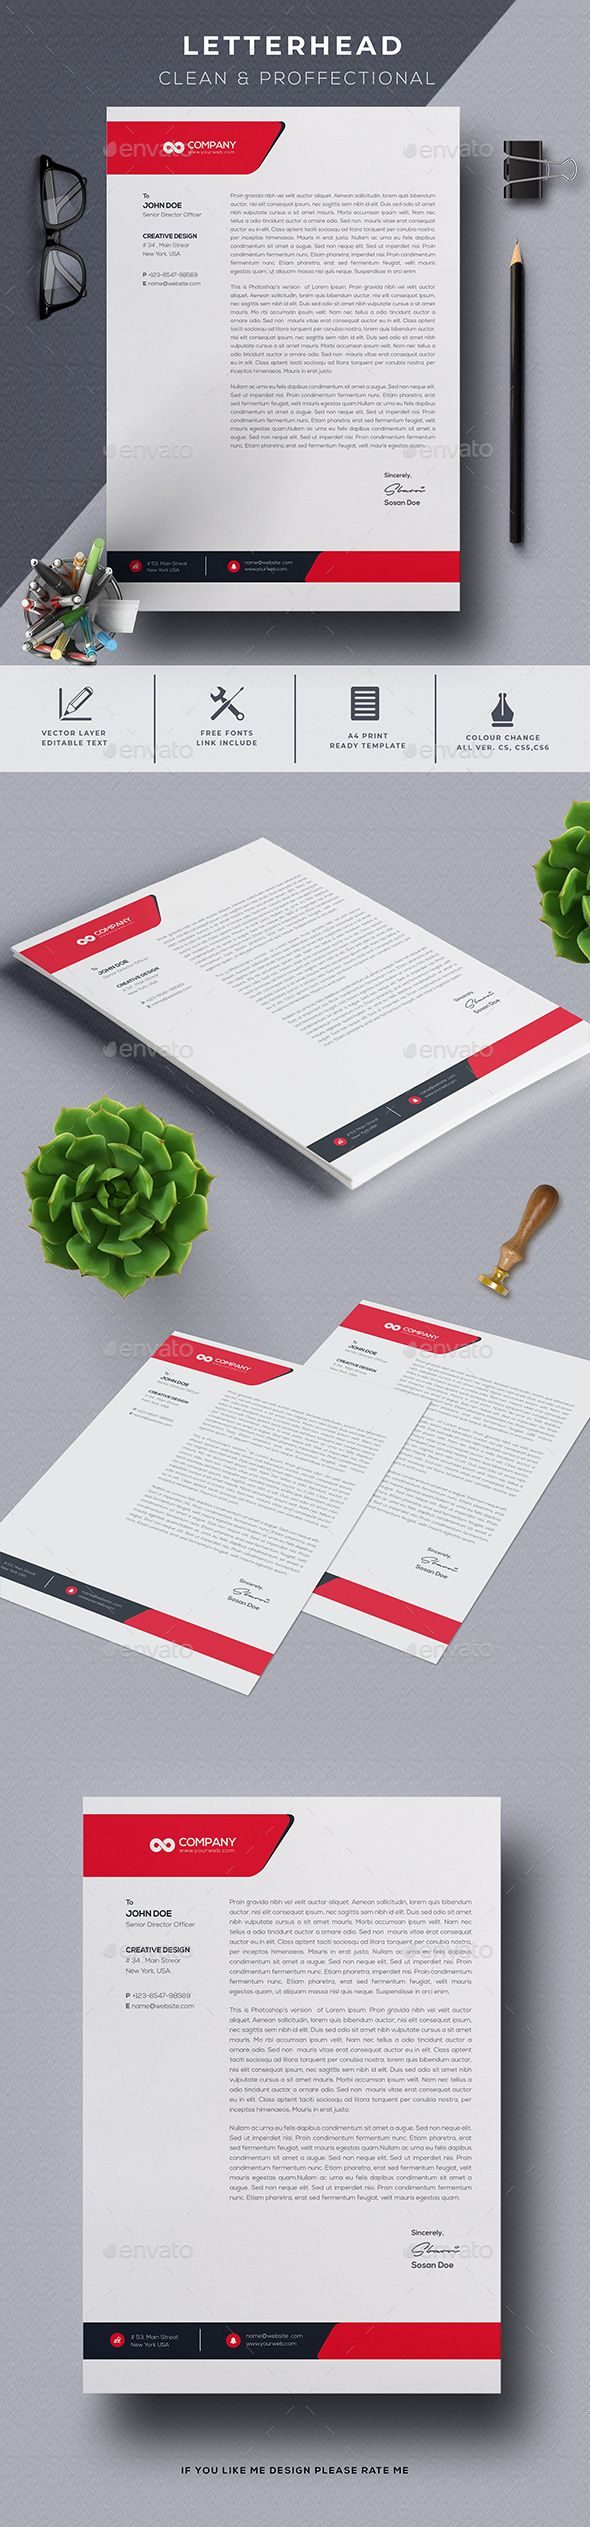 Letter Head Stationery Print Templates 1220